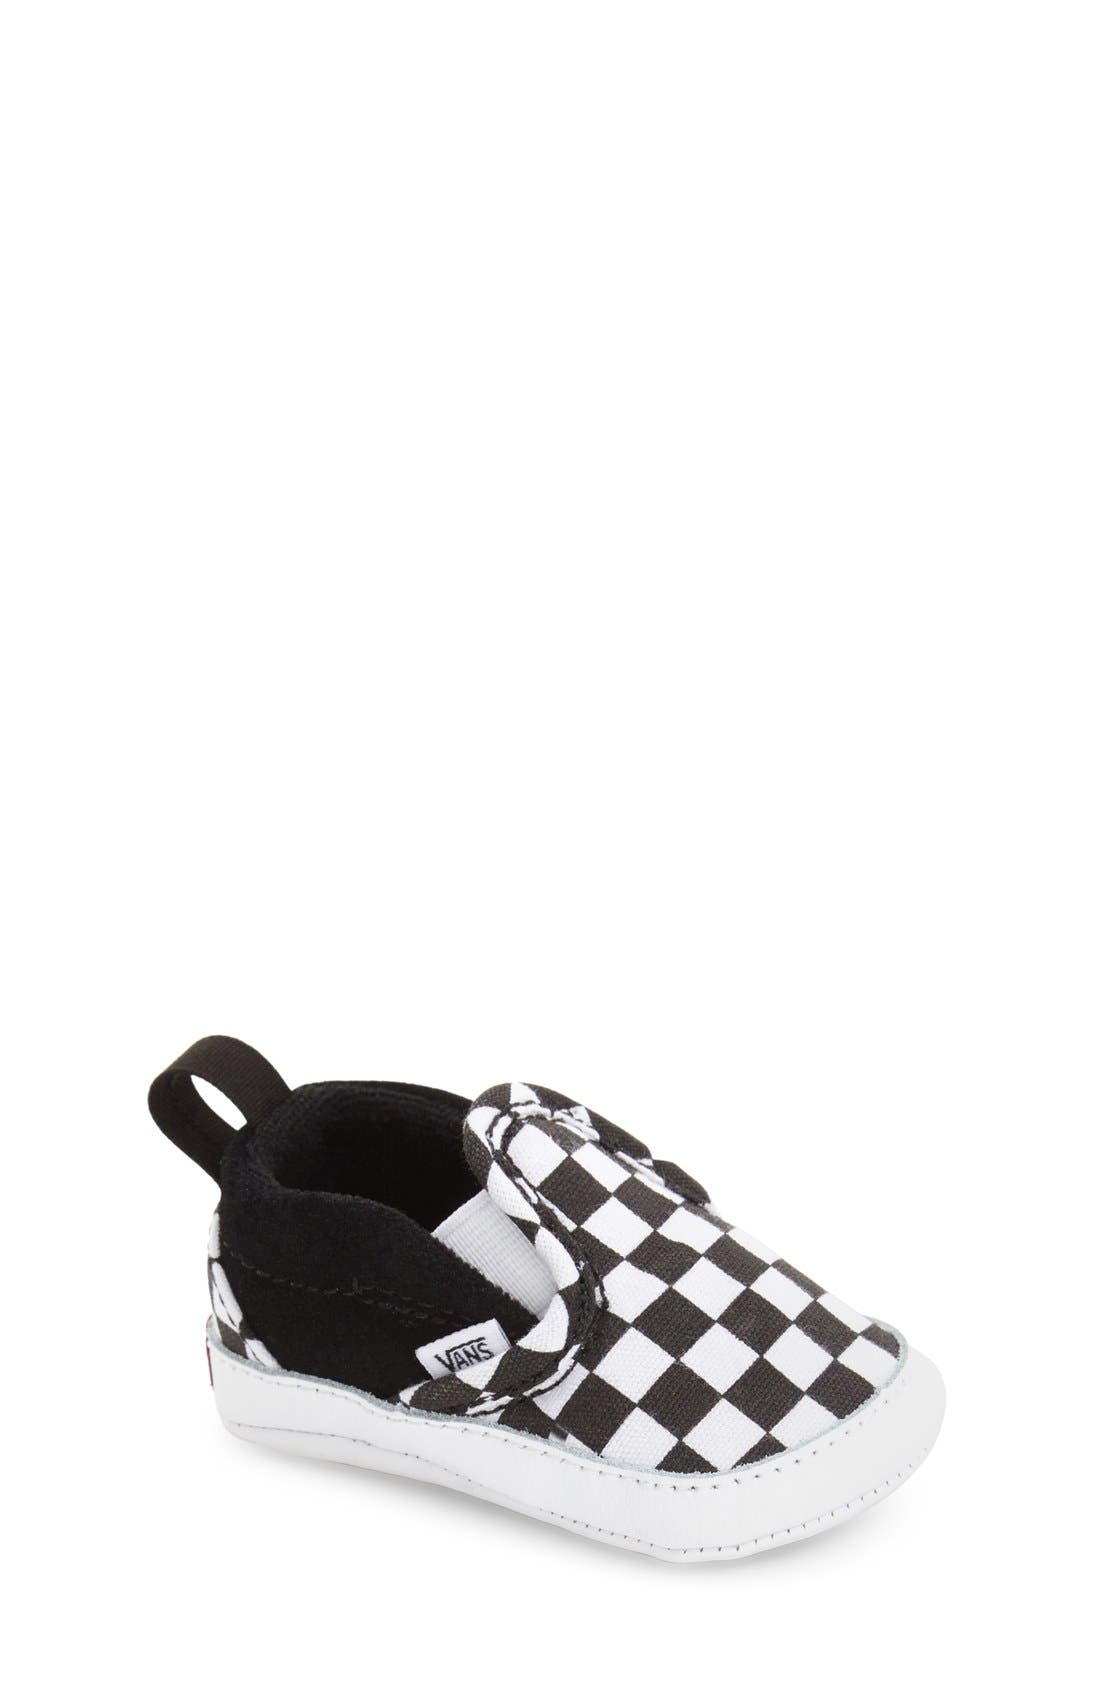 Vans Slip-On Crib Shoe (Baby)